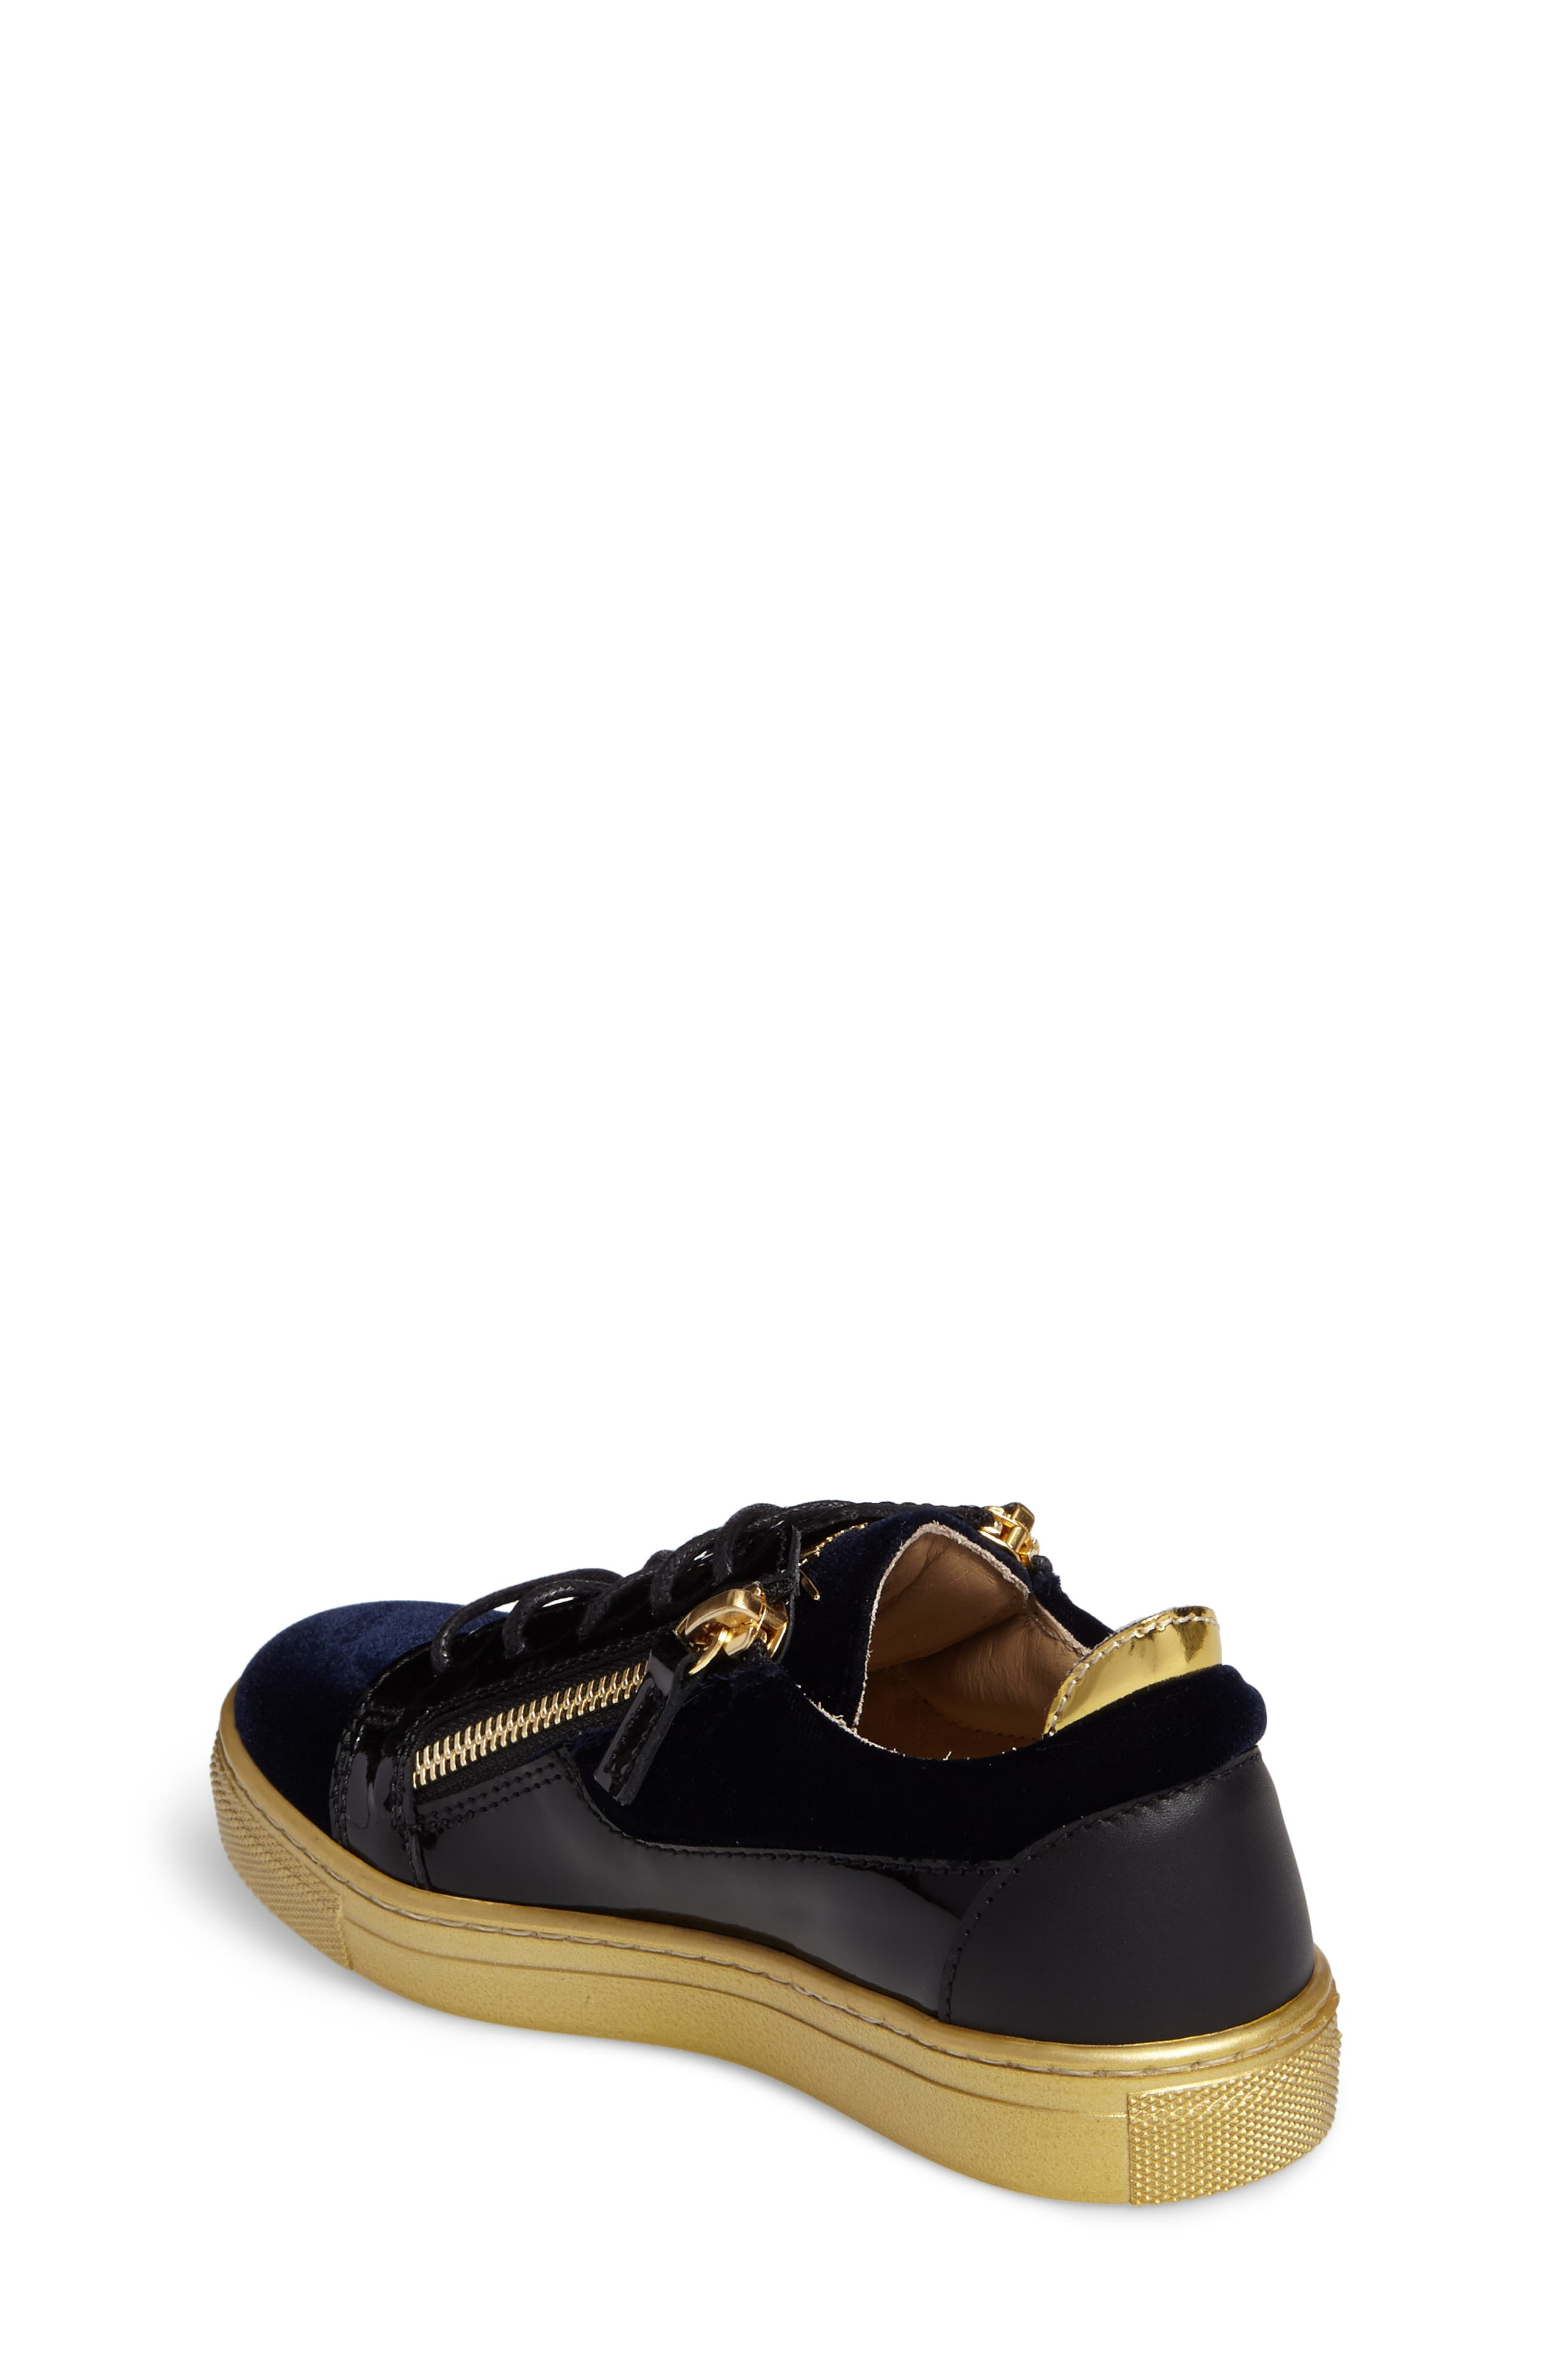 Alternate Image 2  - Giuseppe Zanotti London Sneaker (Toddler & Little Kid)